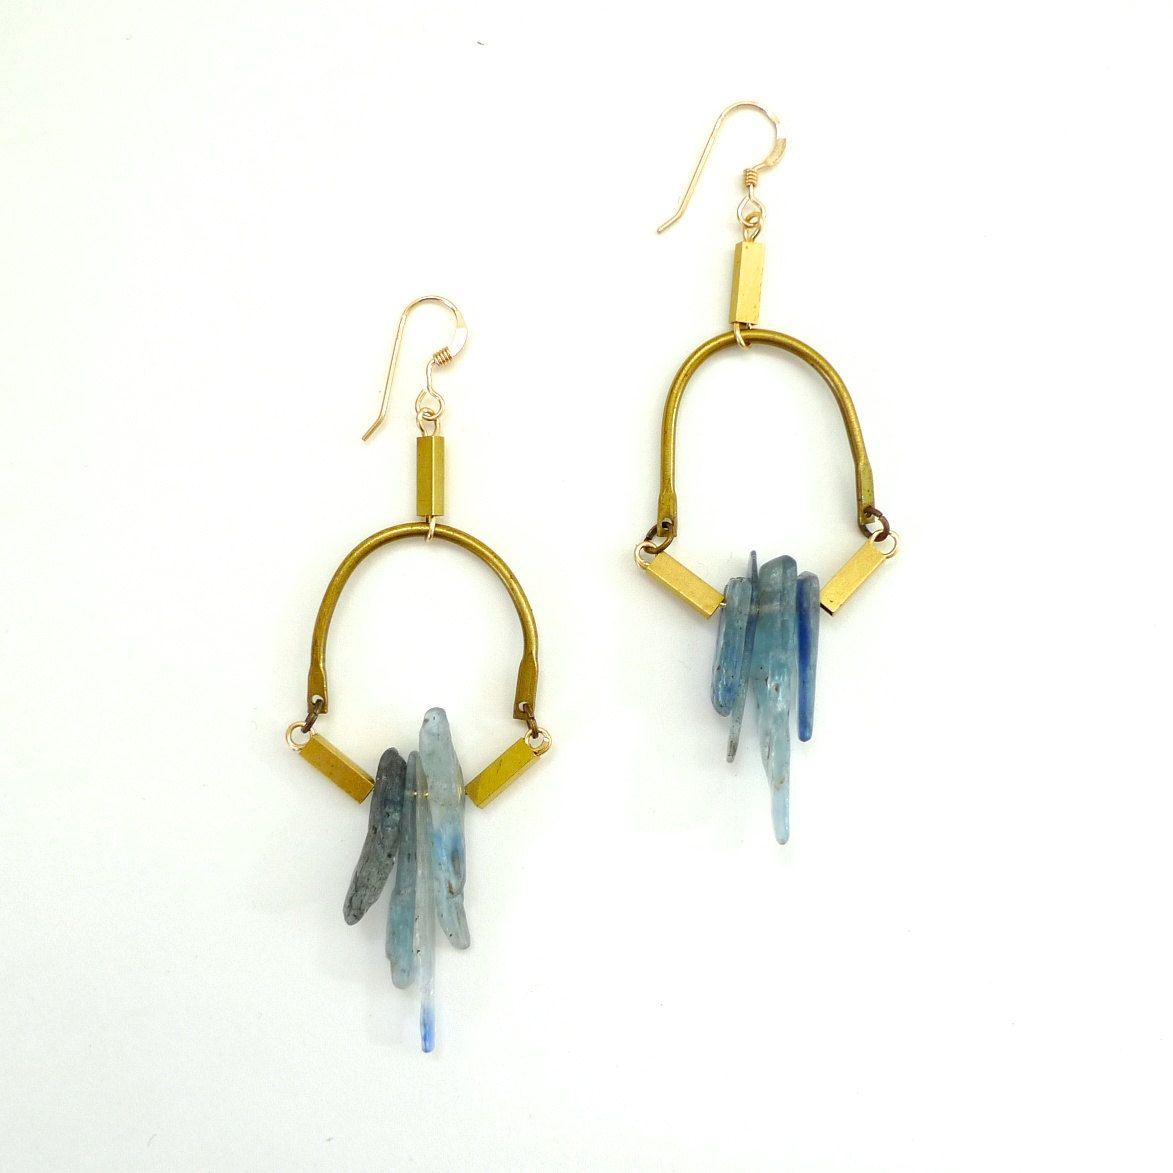 kyanite crystal point and chain earrings, from nobletownvintage on etsy